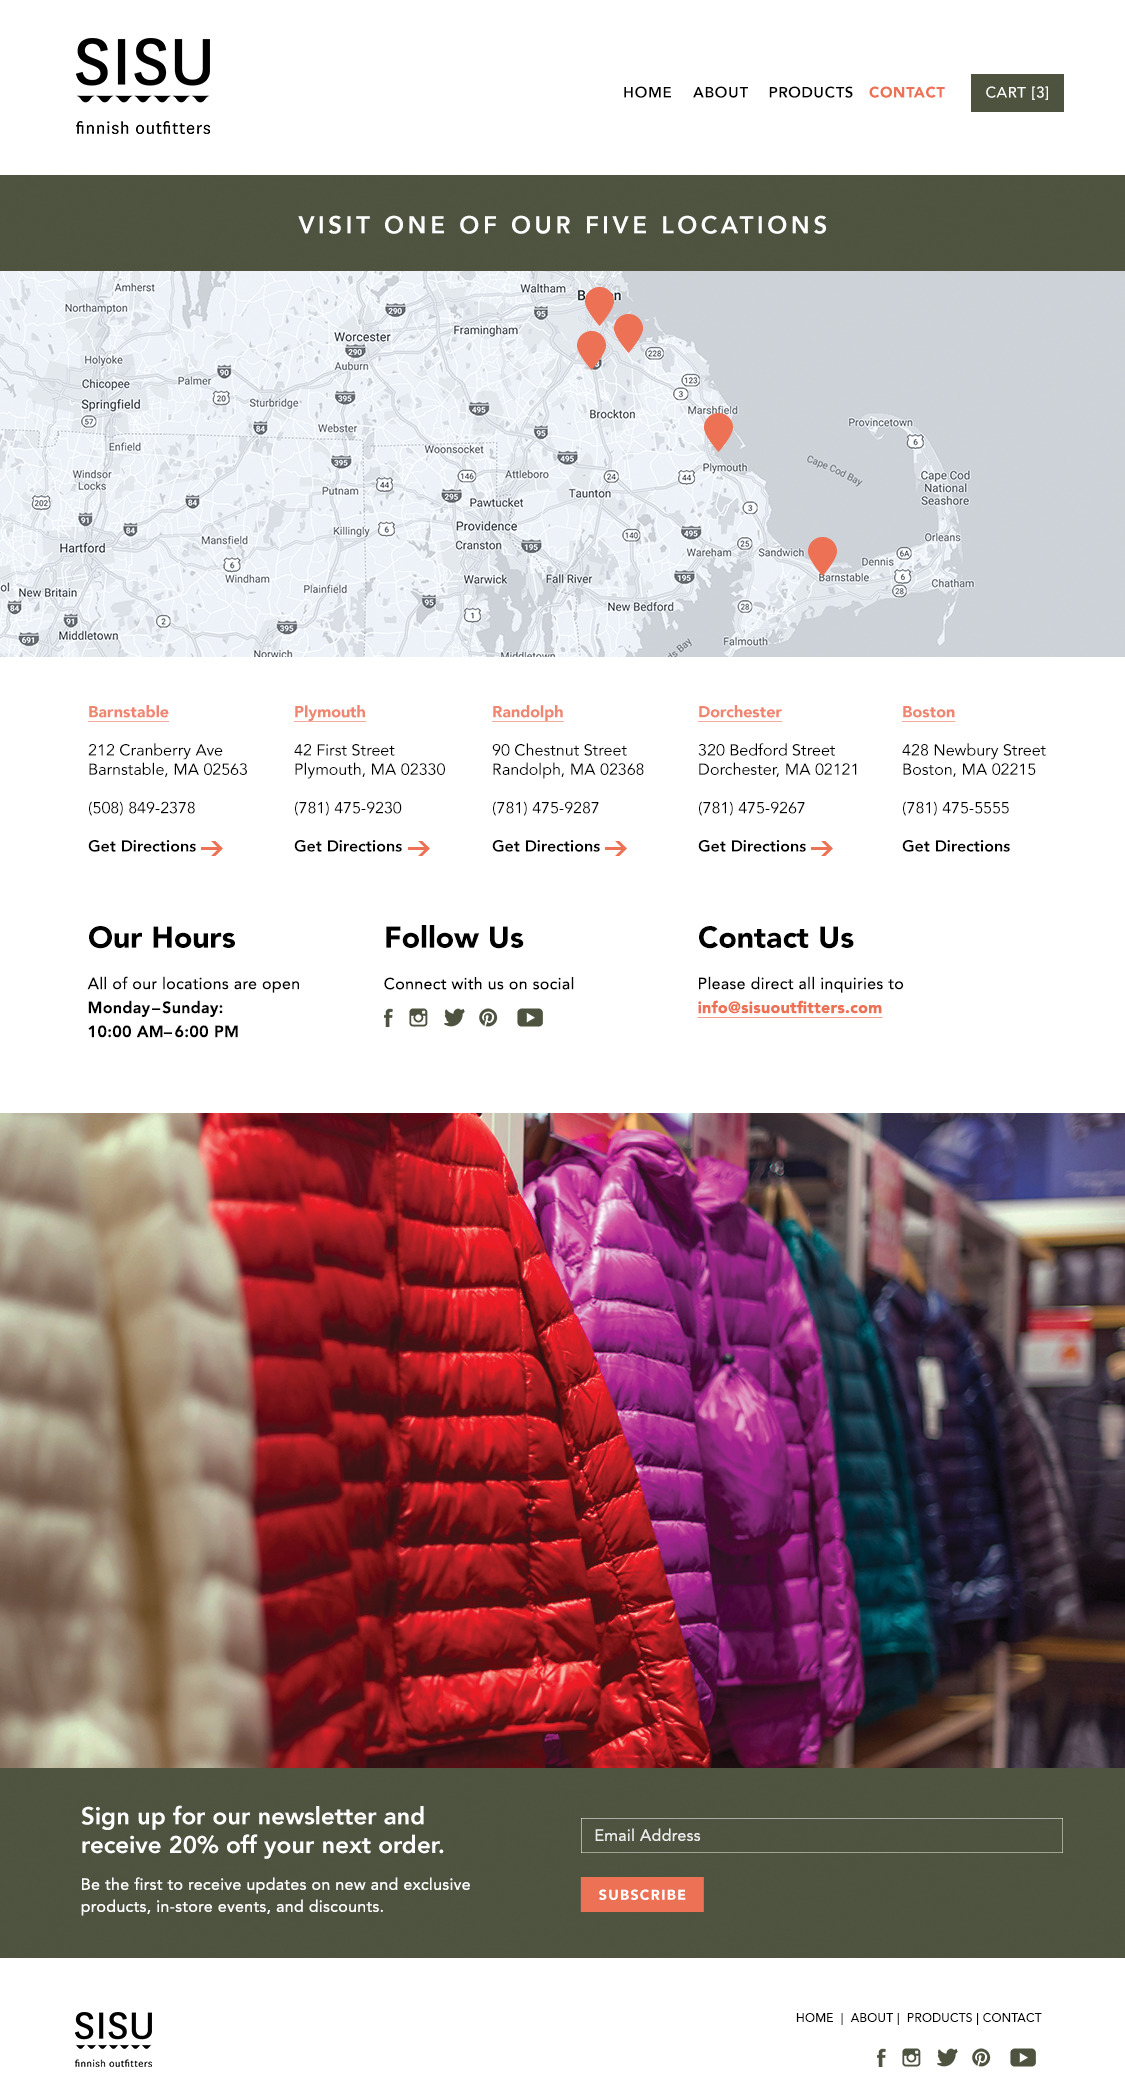 ecommerce website design tips - #7- use scannable content - mockup website with color blocks and content that is easily scannable